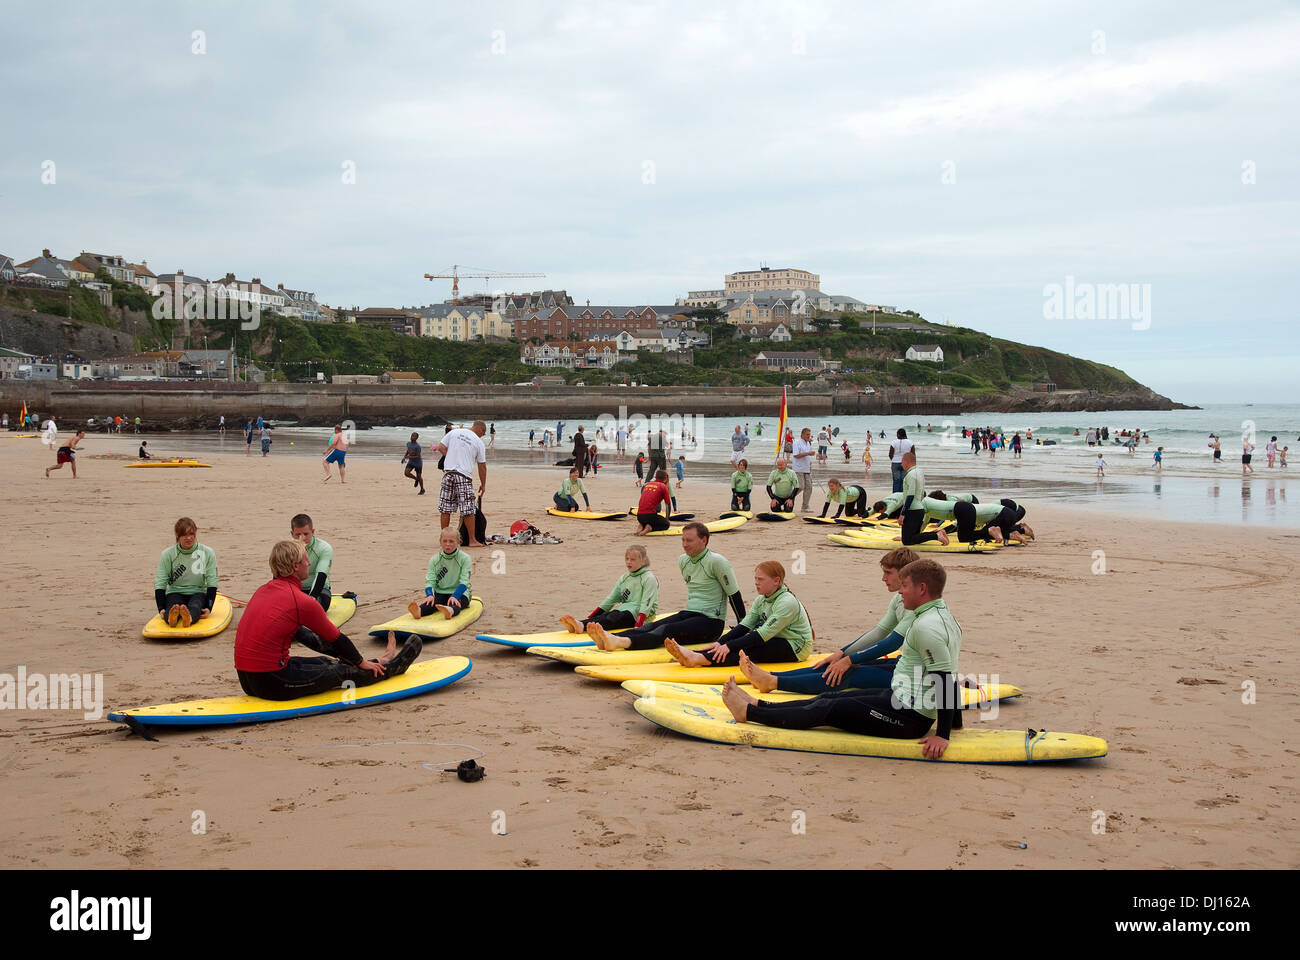 A ' surfing school ' on Towan beach in Newquay, Cornwall, UK - Stock Image